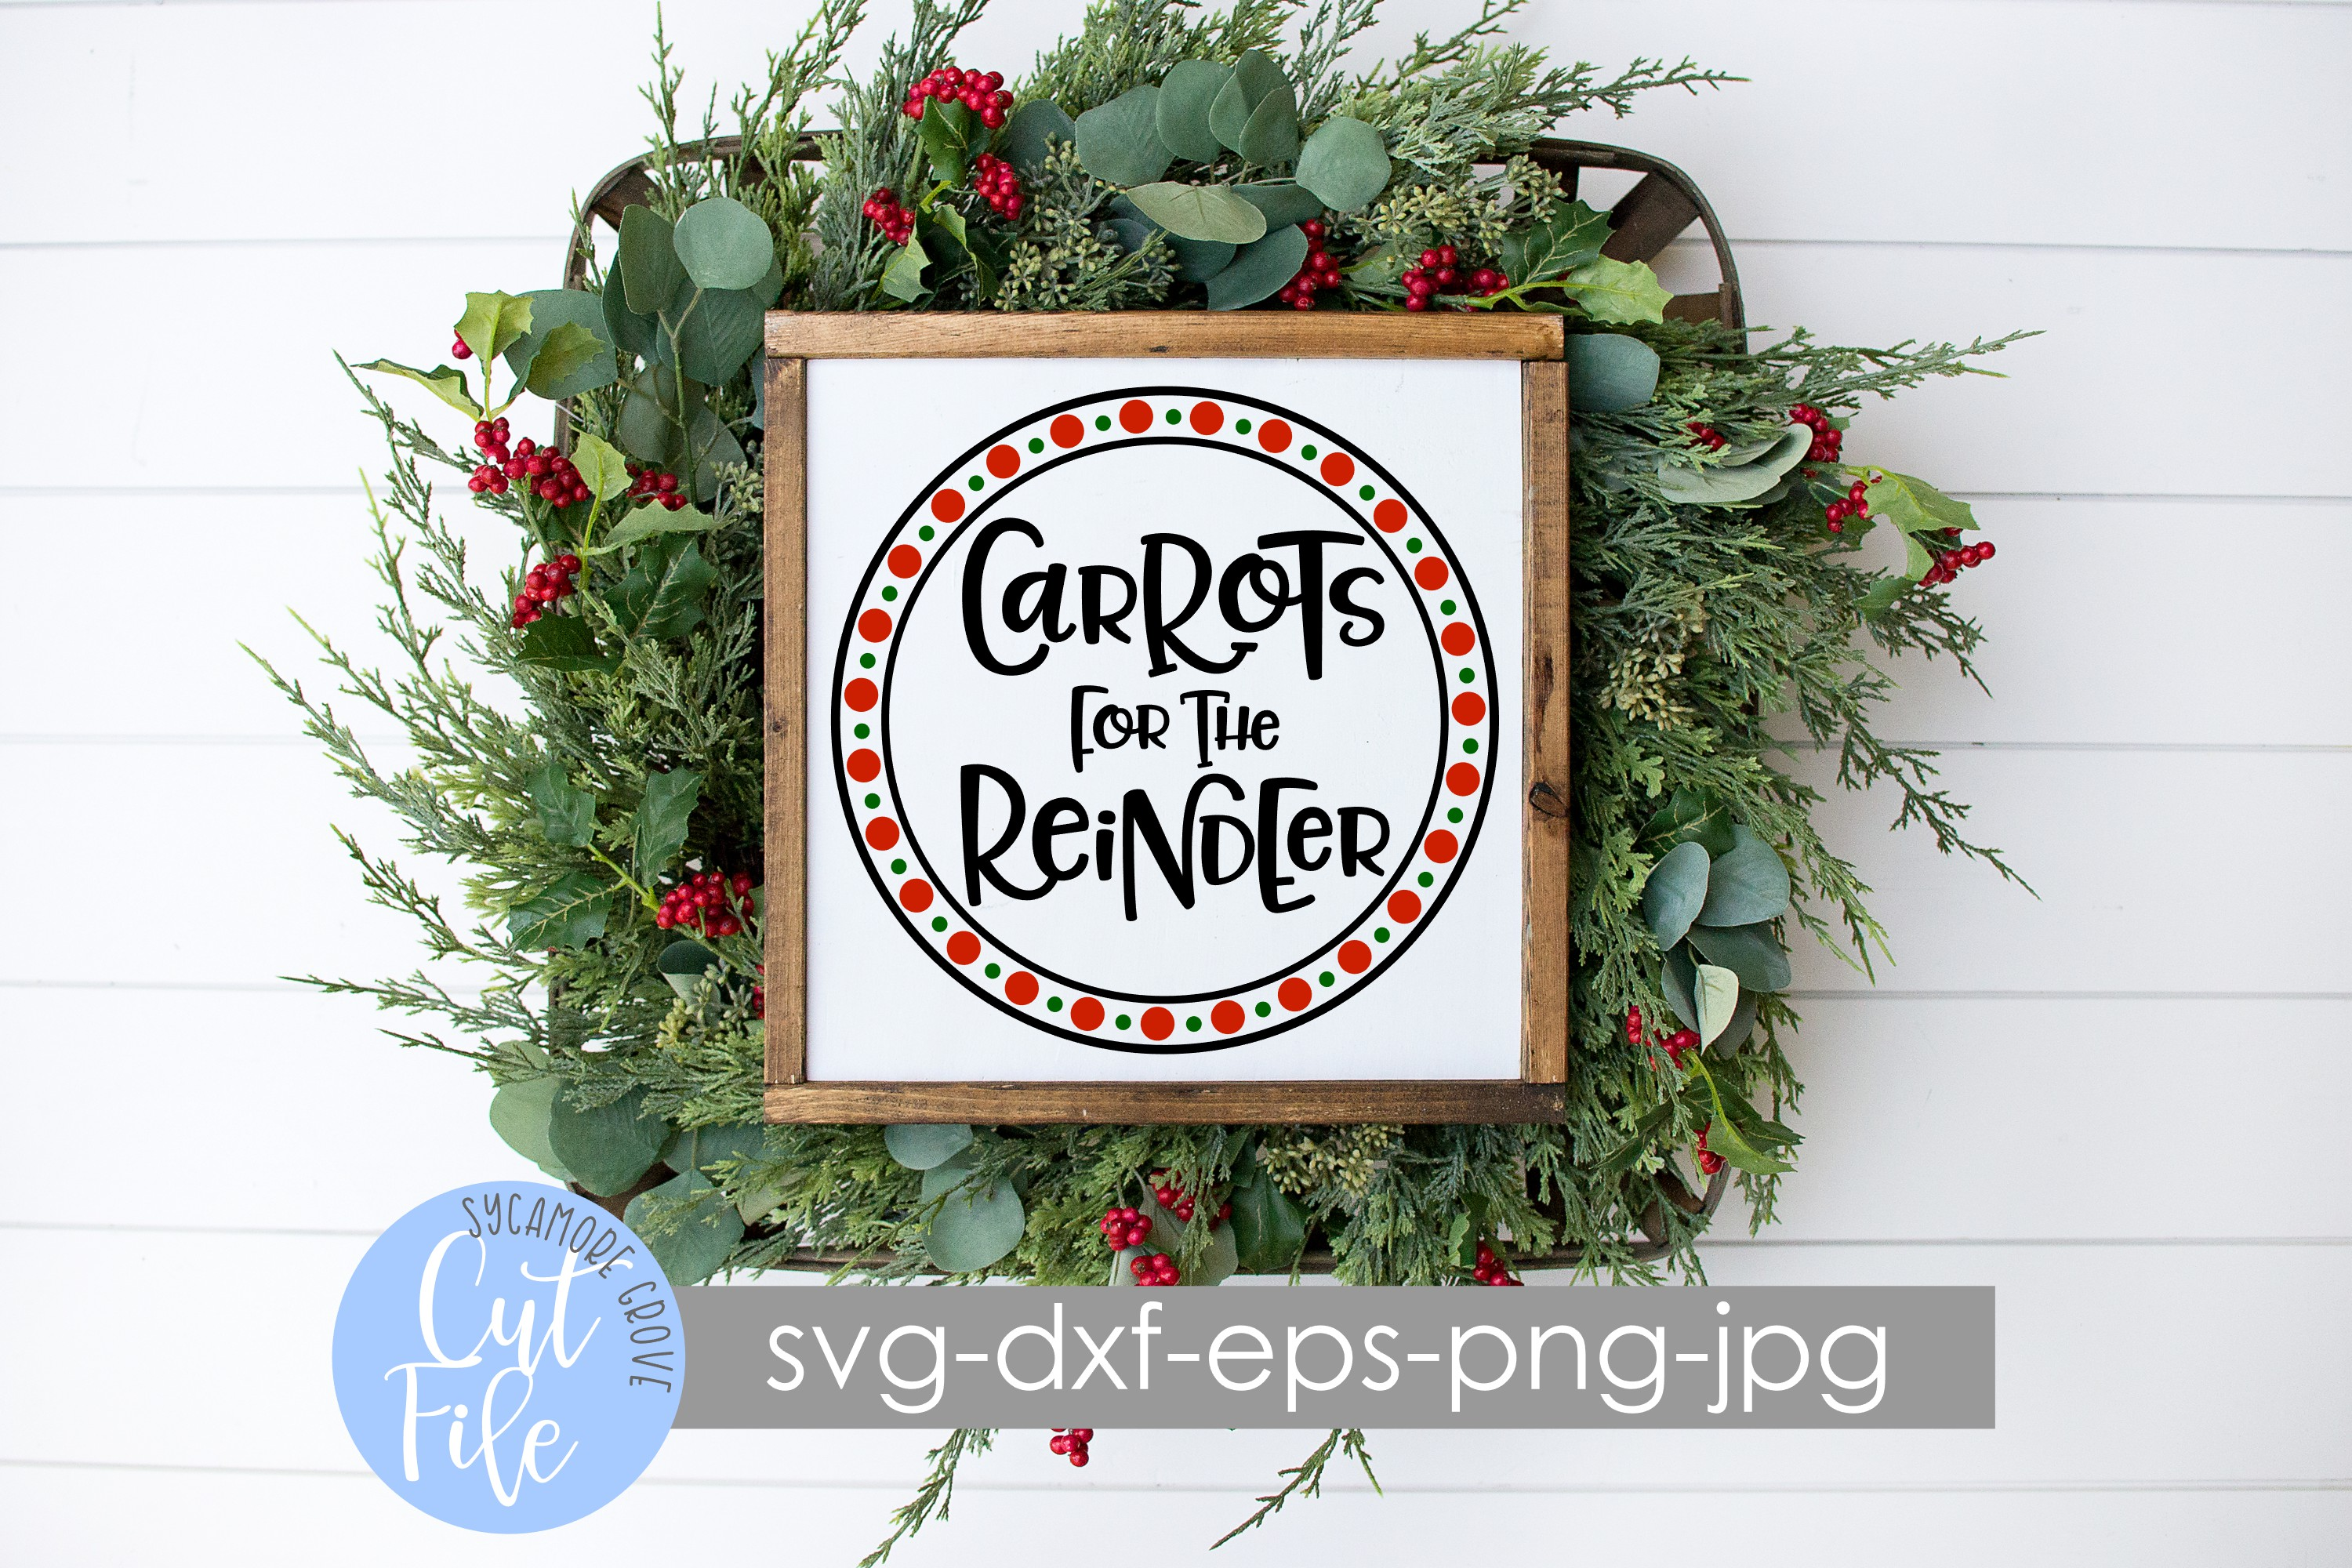 Carrots for the Reindeer | Christmas SVG example image 2